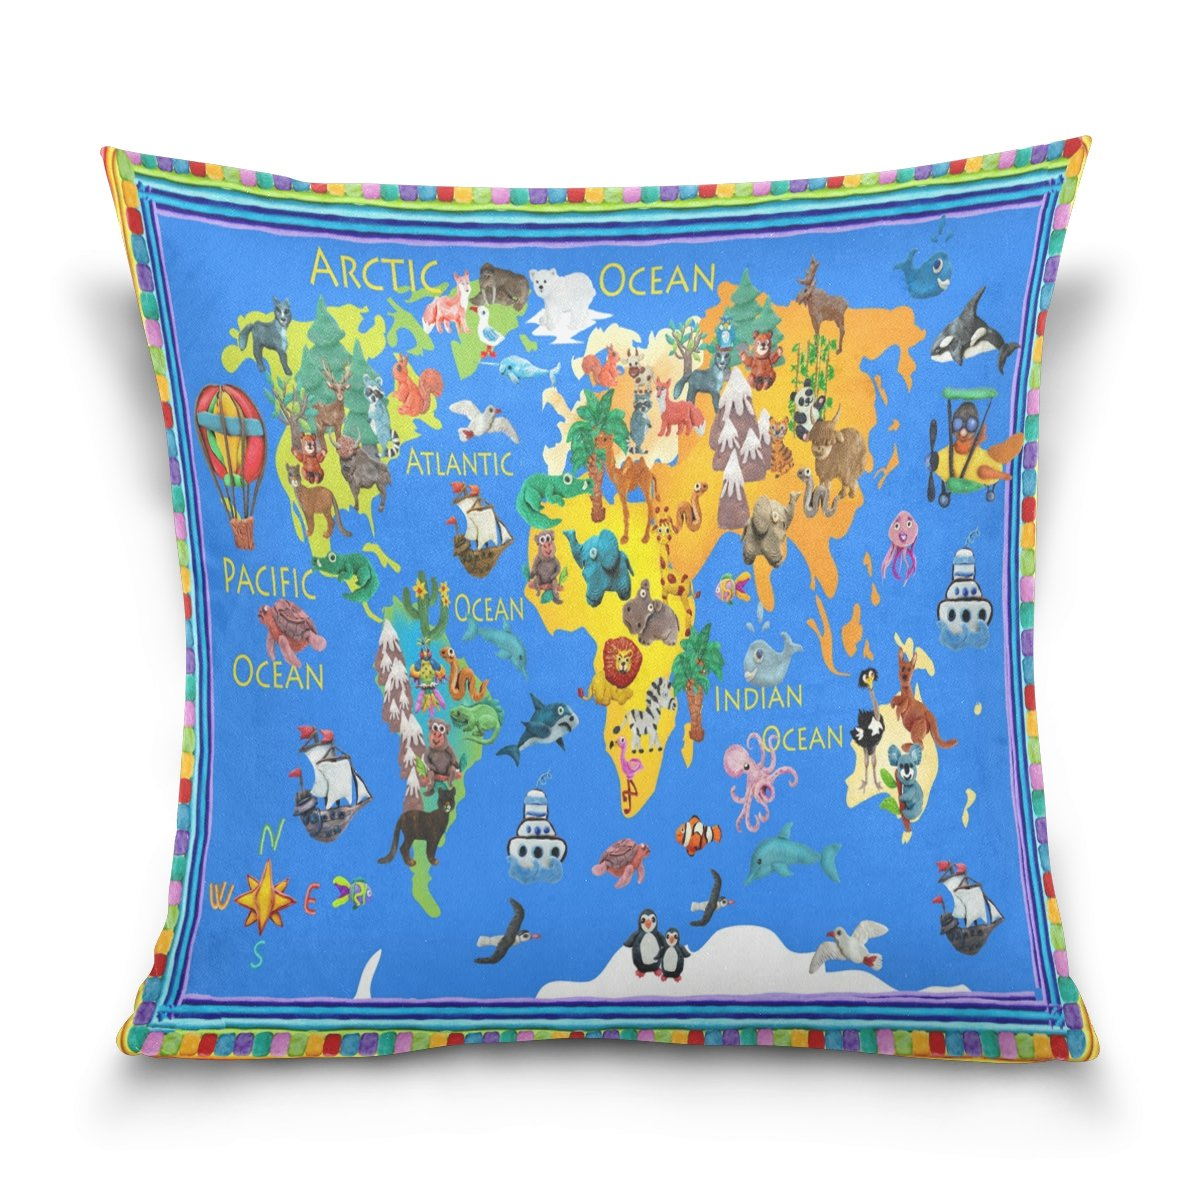 ALAZA Cartoon Animal World Map Cotton Pillowcase 20 X 20 Inches Twin Sides, Cute Global World Map Pillow Case Sham Cover Protector Decorative for Home Hotel Couch Ded